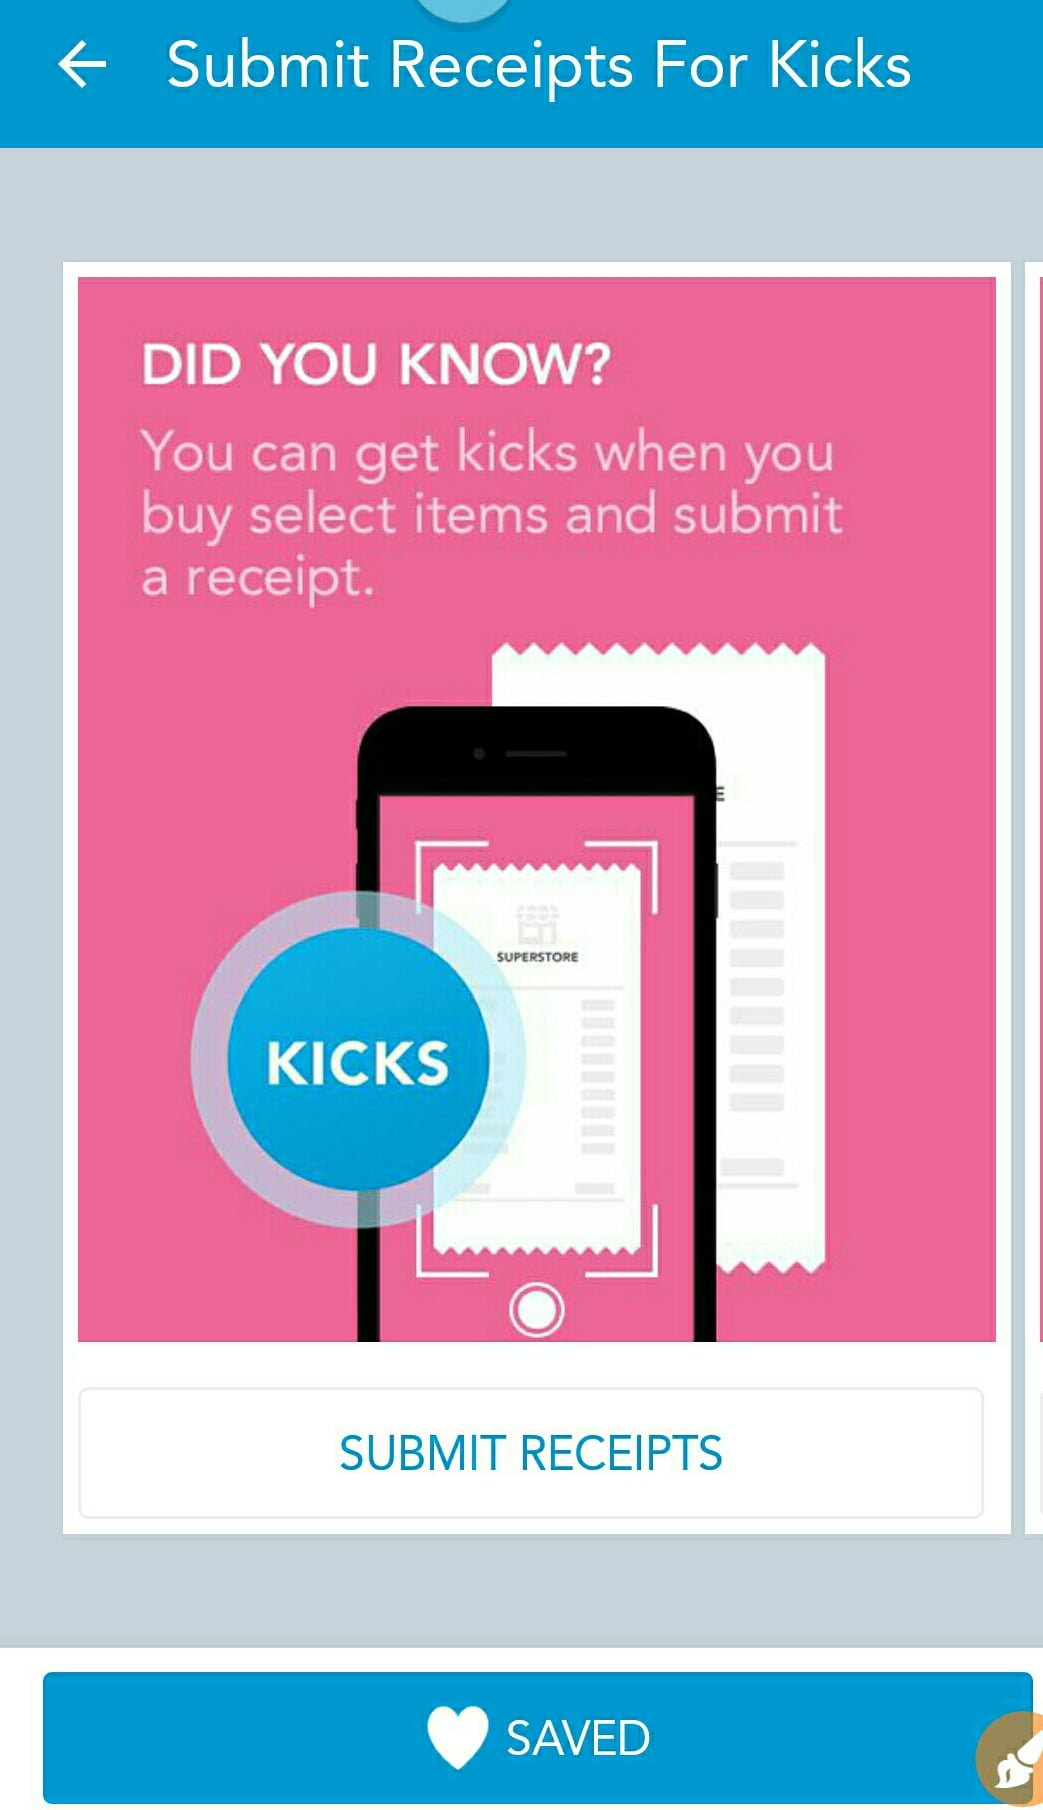 Shopkick App: How to Use & Get Free Gift Cards